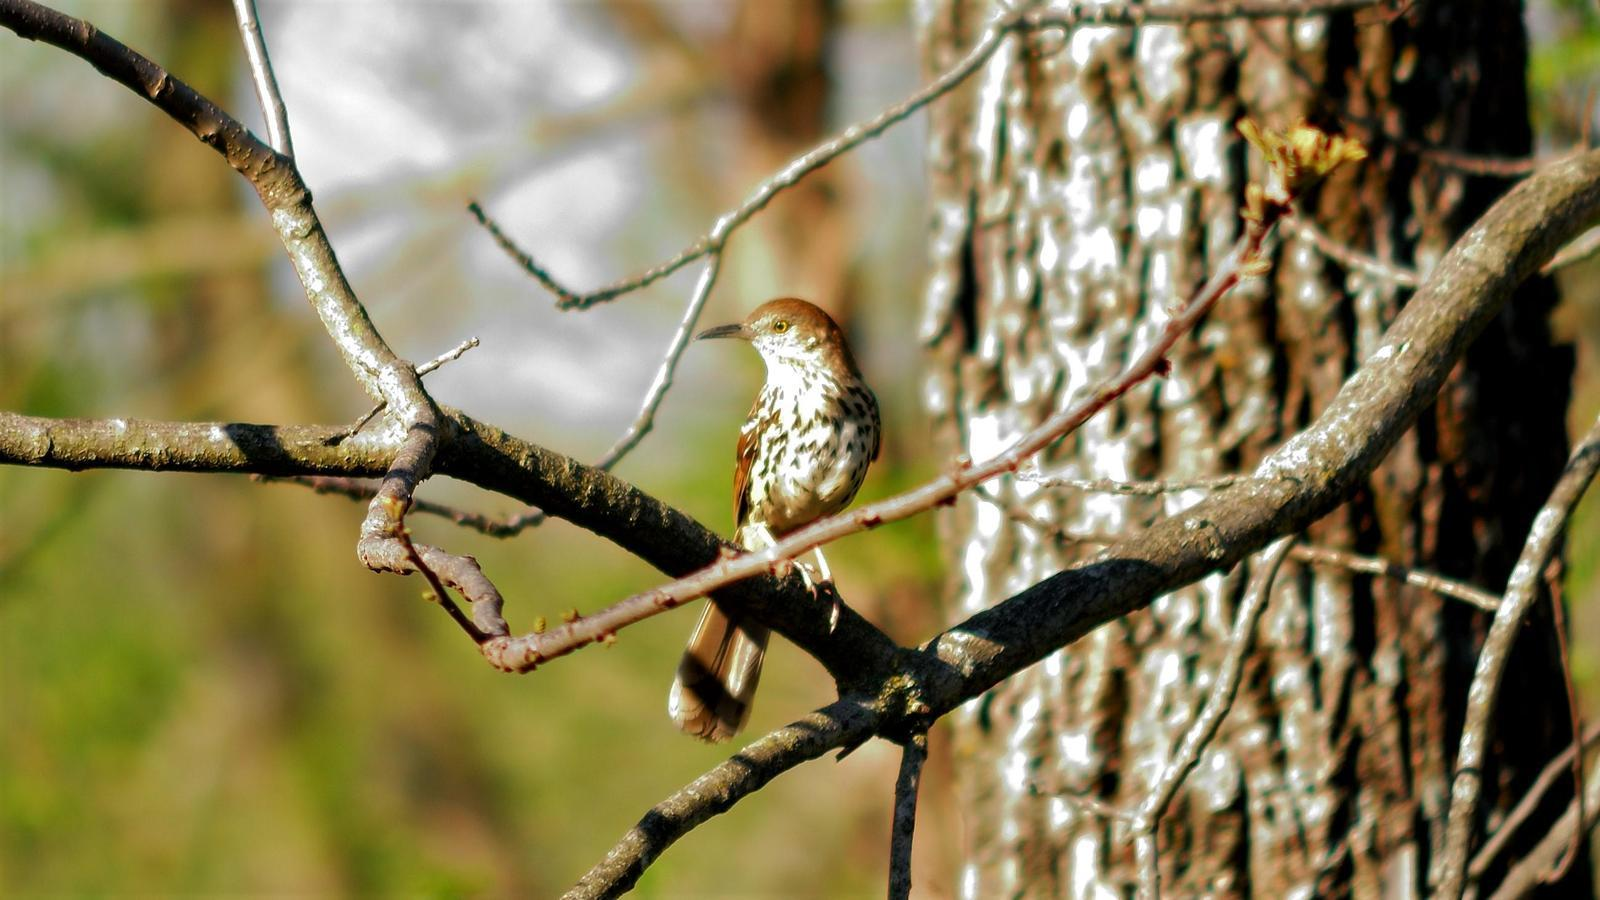 Brown Thrasher Photo by RM Beck